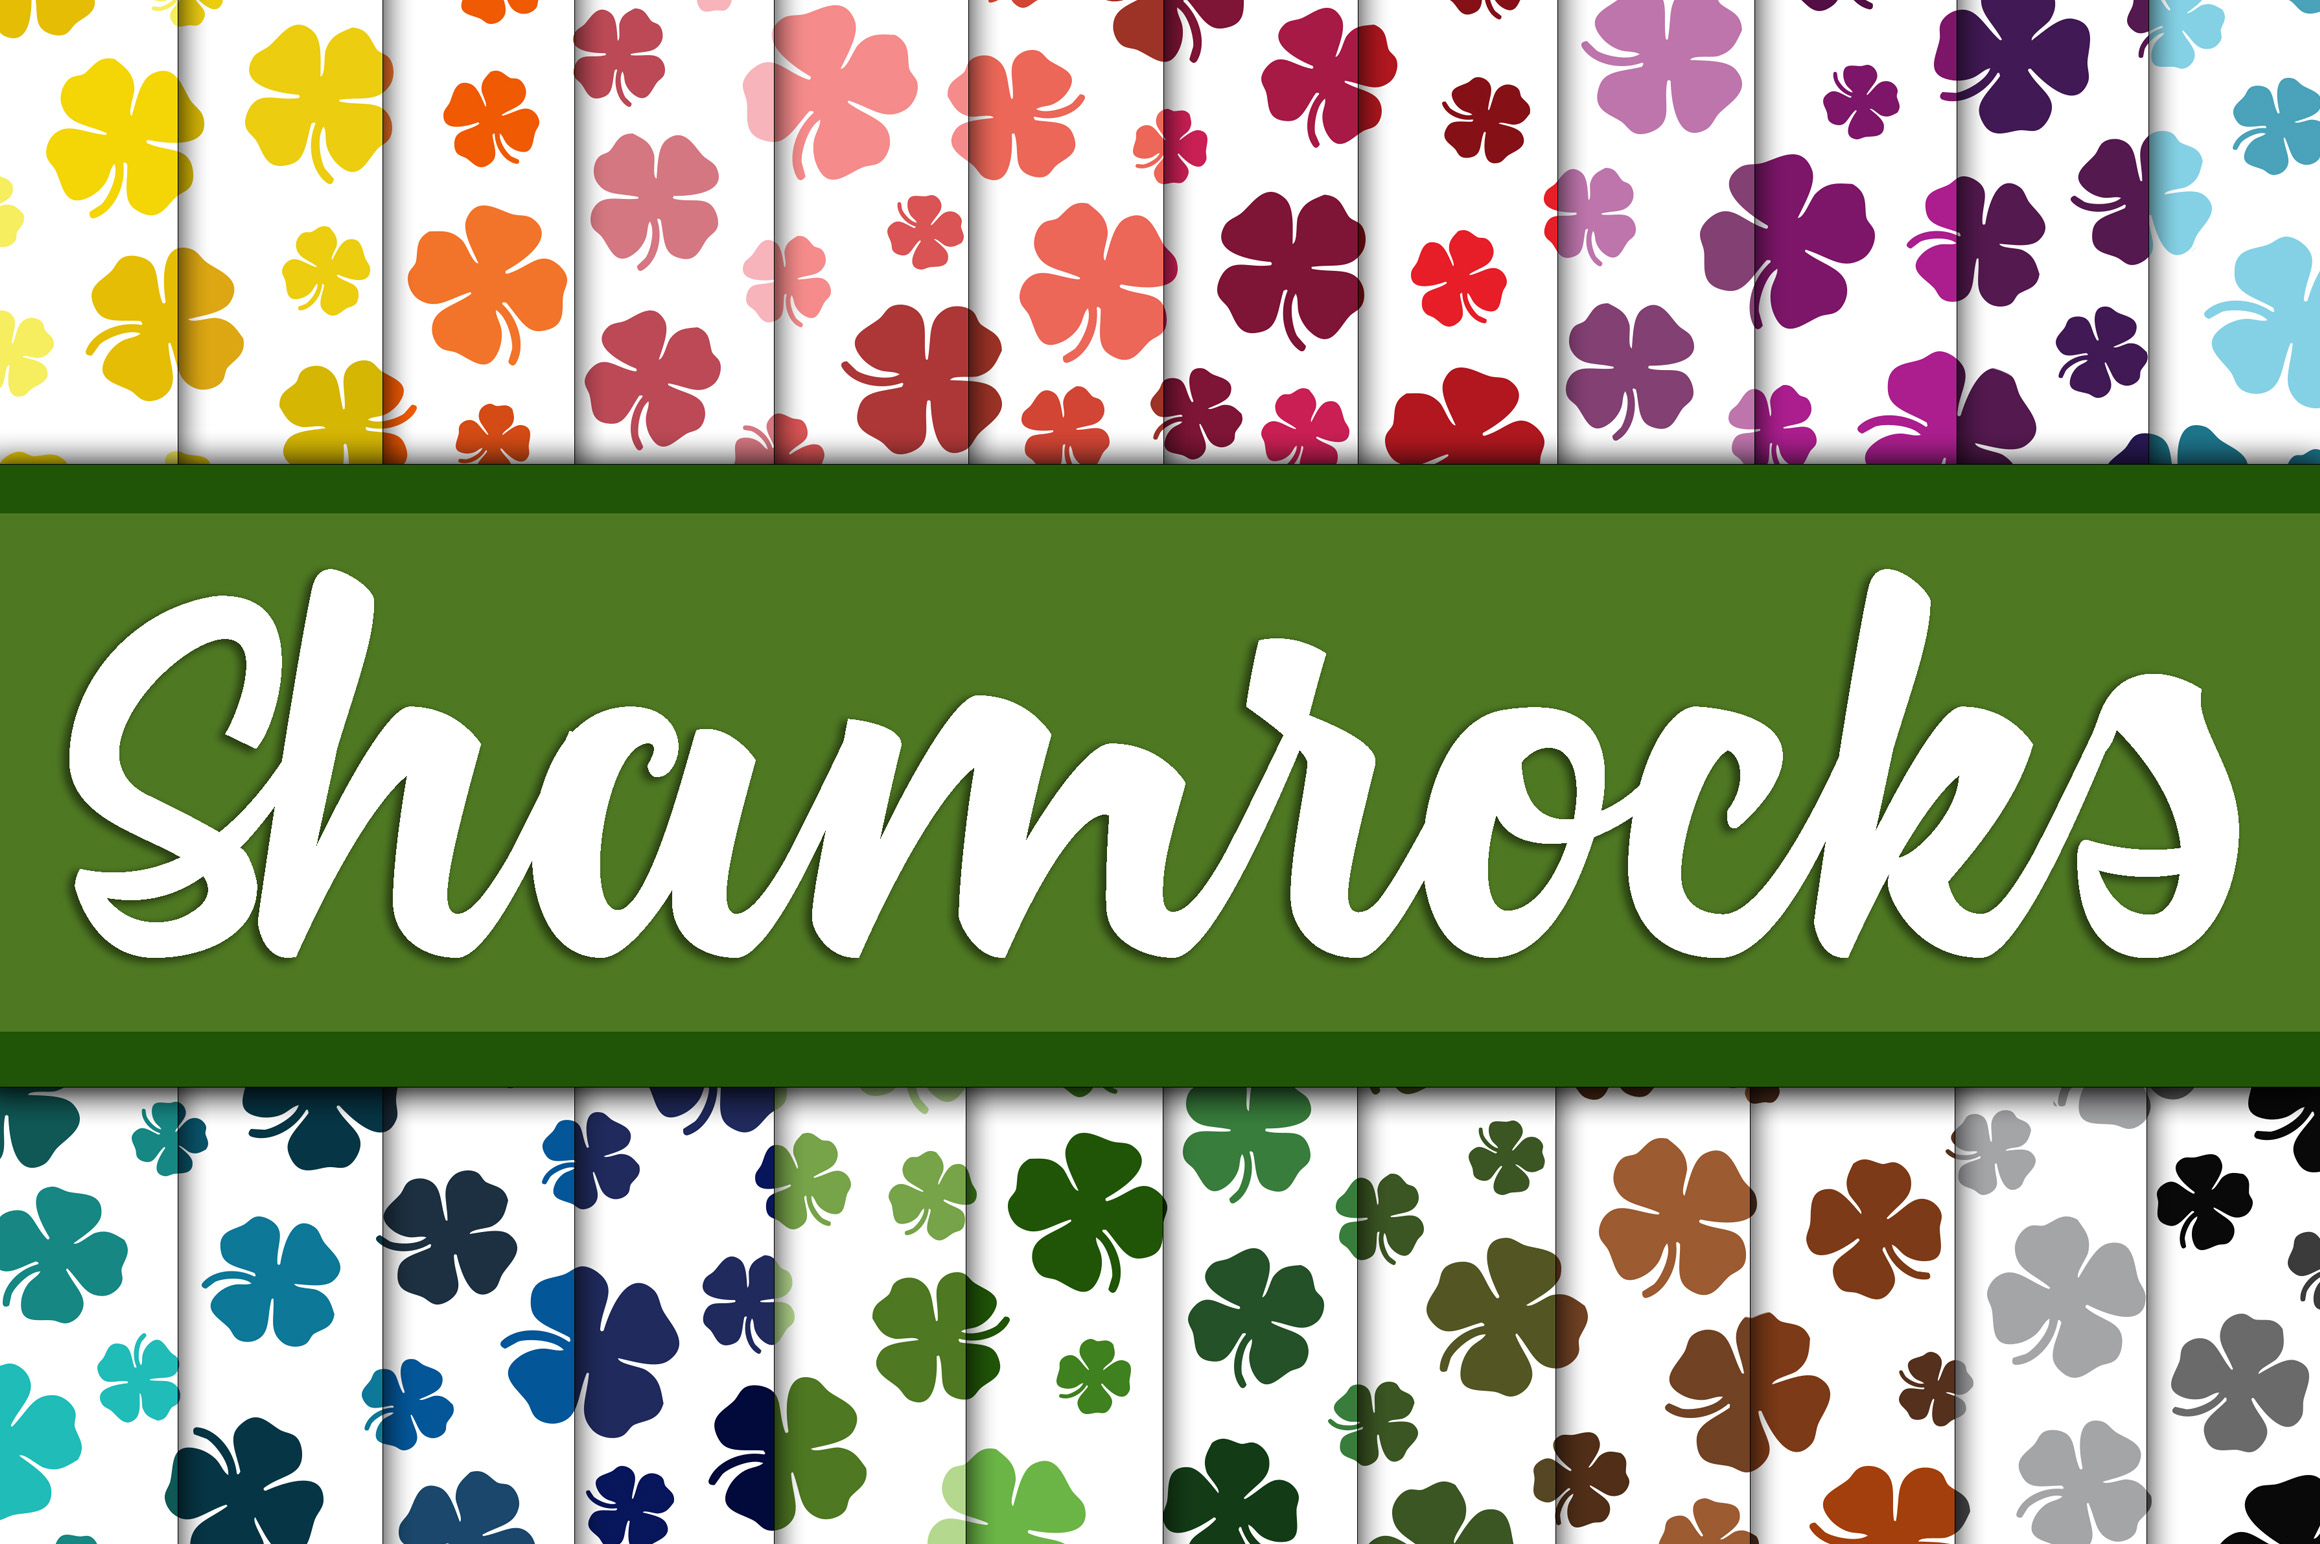 Shamrock Digital Paper - Colorful St Patrick's Day Backgrounds Graphic Backgrounds By oldmarketdesigns - Image 1